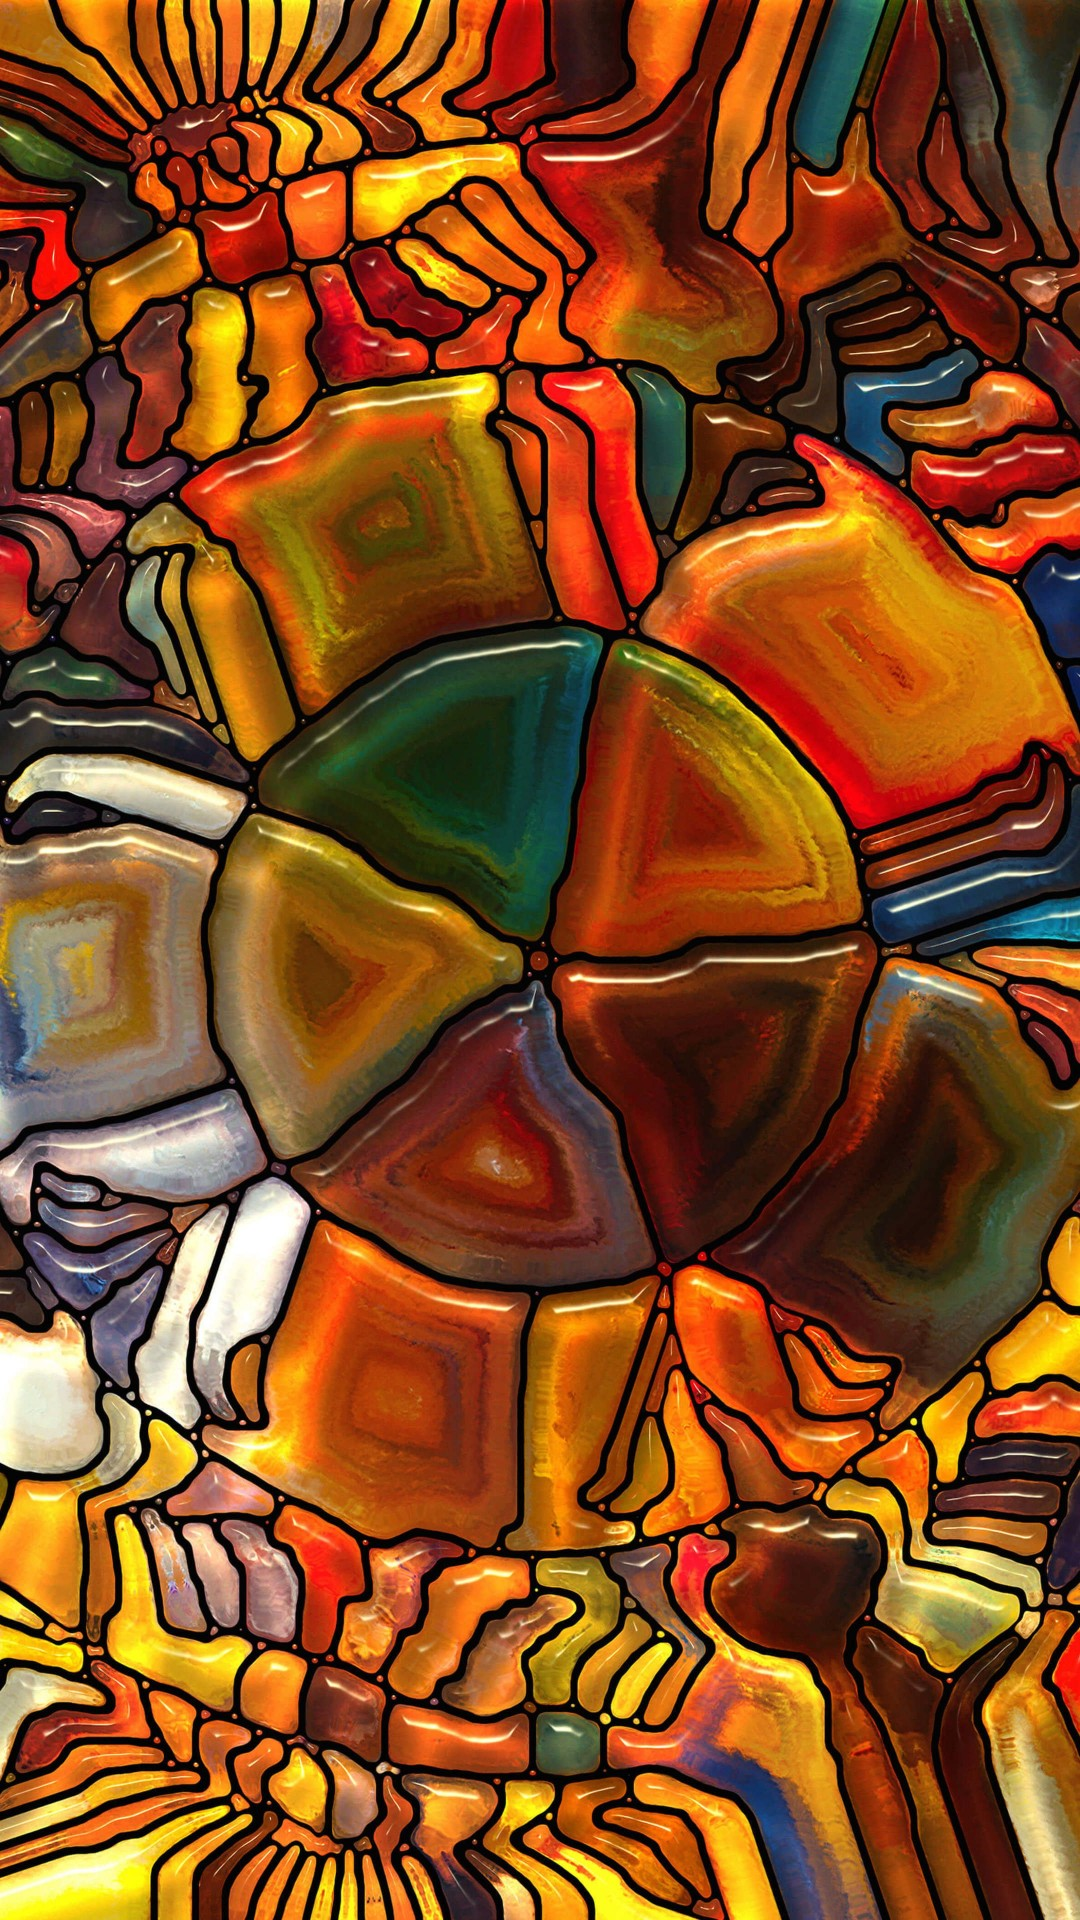 Psychedelic Stained Glass Wallpaper for Motorola Moto X